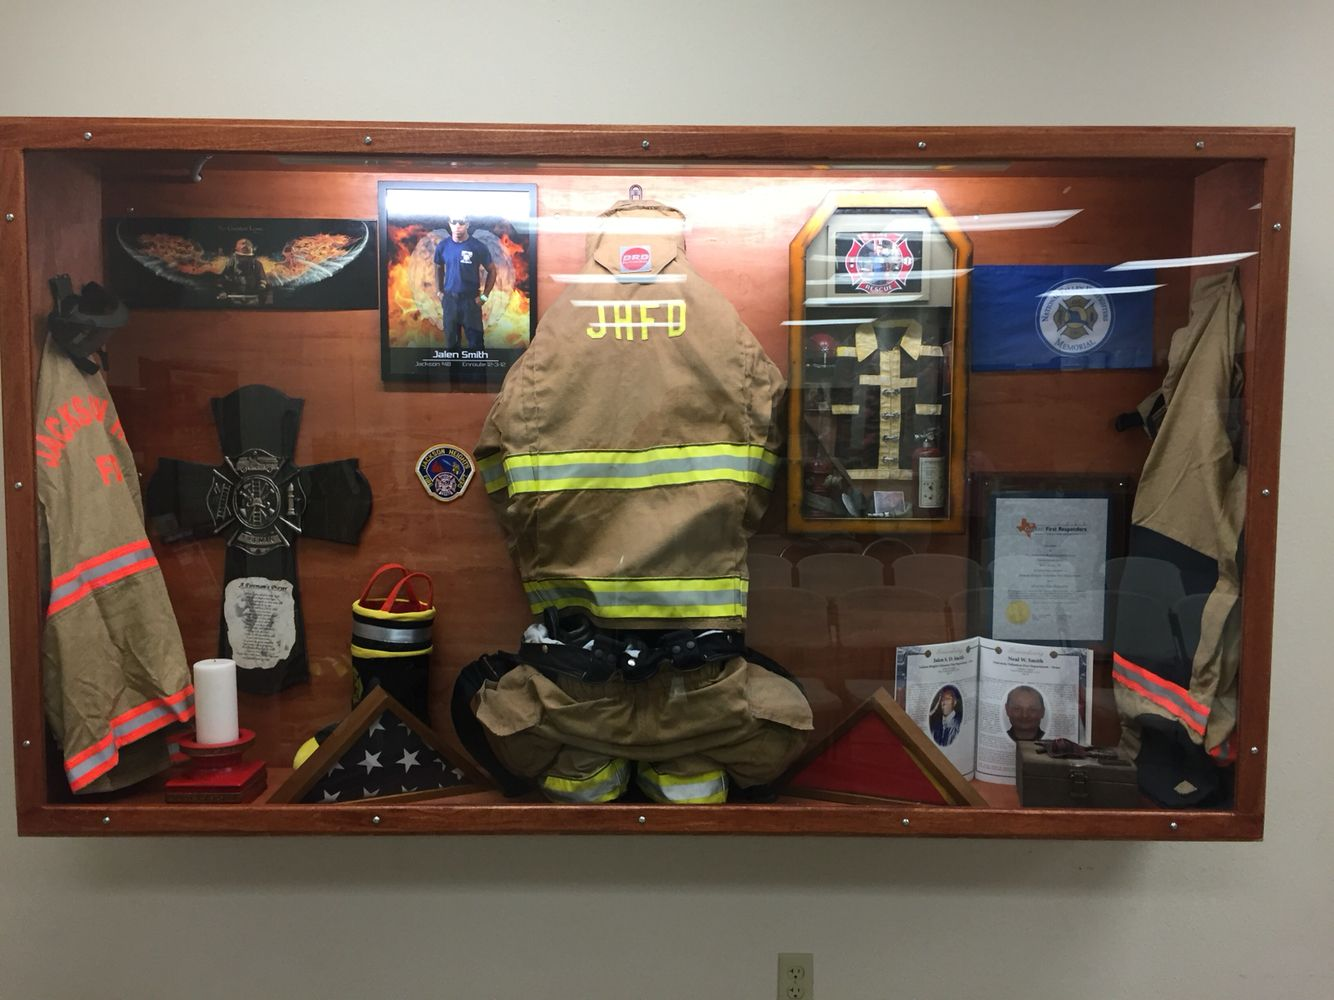 Shadow Box Fire Fighter Wiring Diagrams To 9v Converter Circuit Diagram Nonstopfree Electronic Circuits Made For A Fallen Firefighter In My Department Home Rh Pinterest Com Fighters Arcade Fight 3